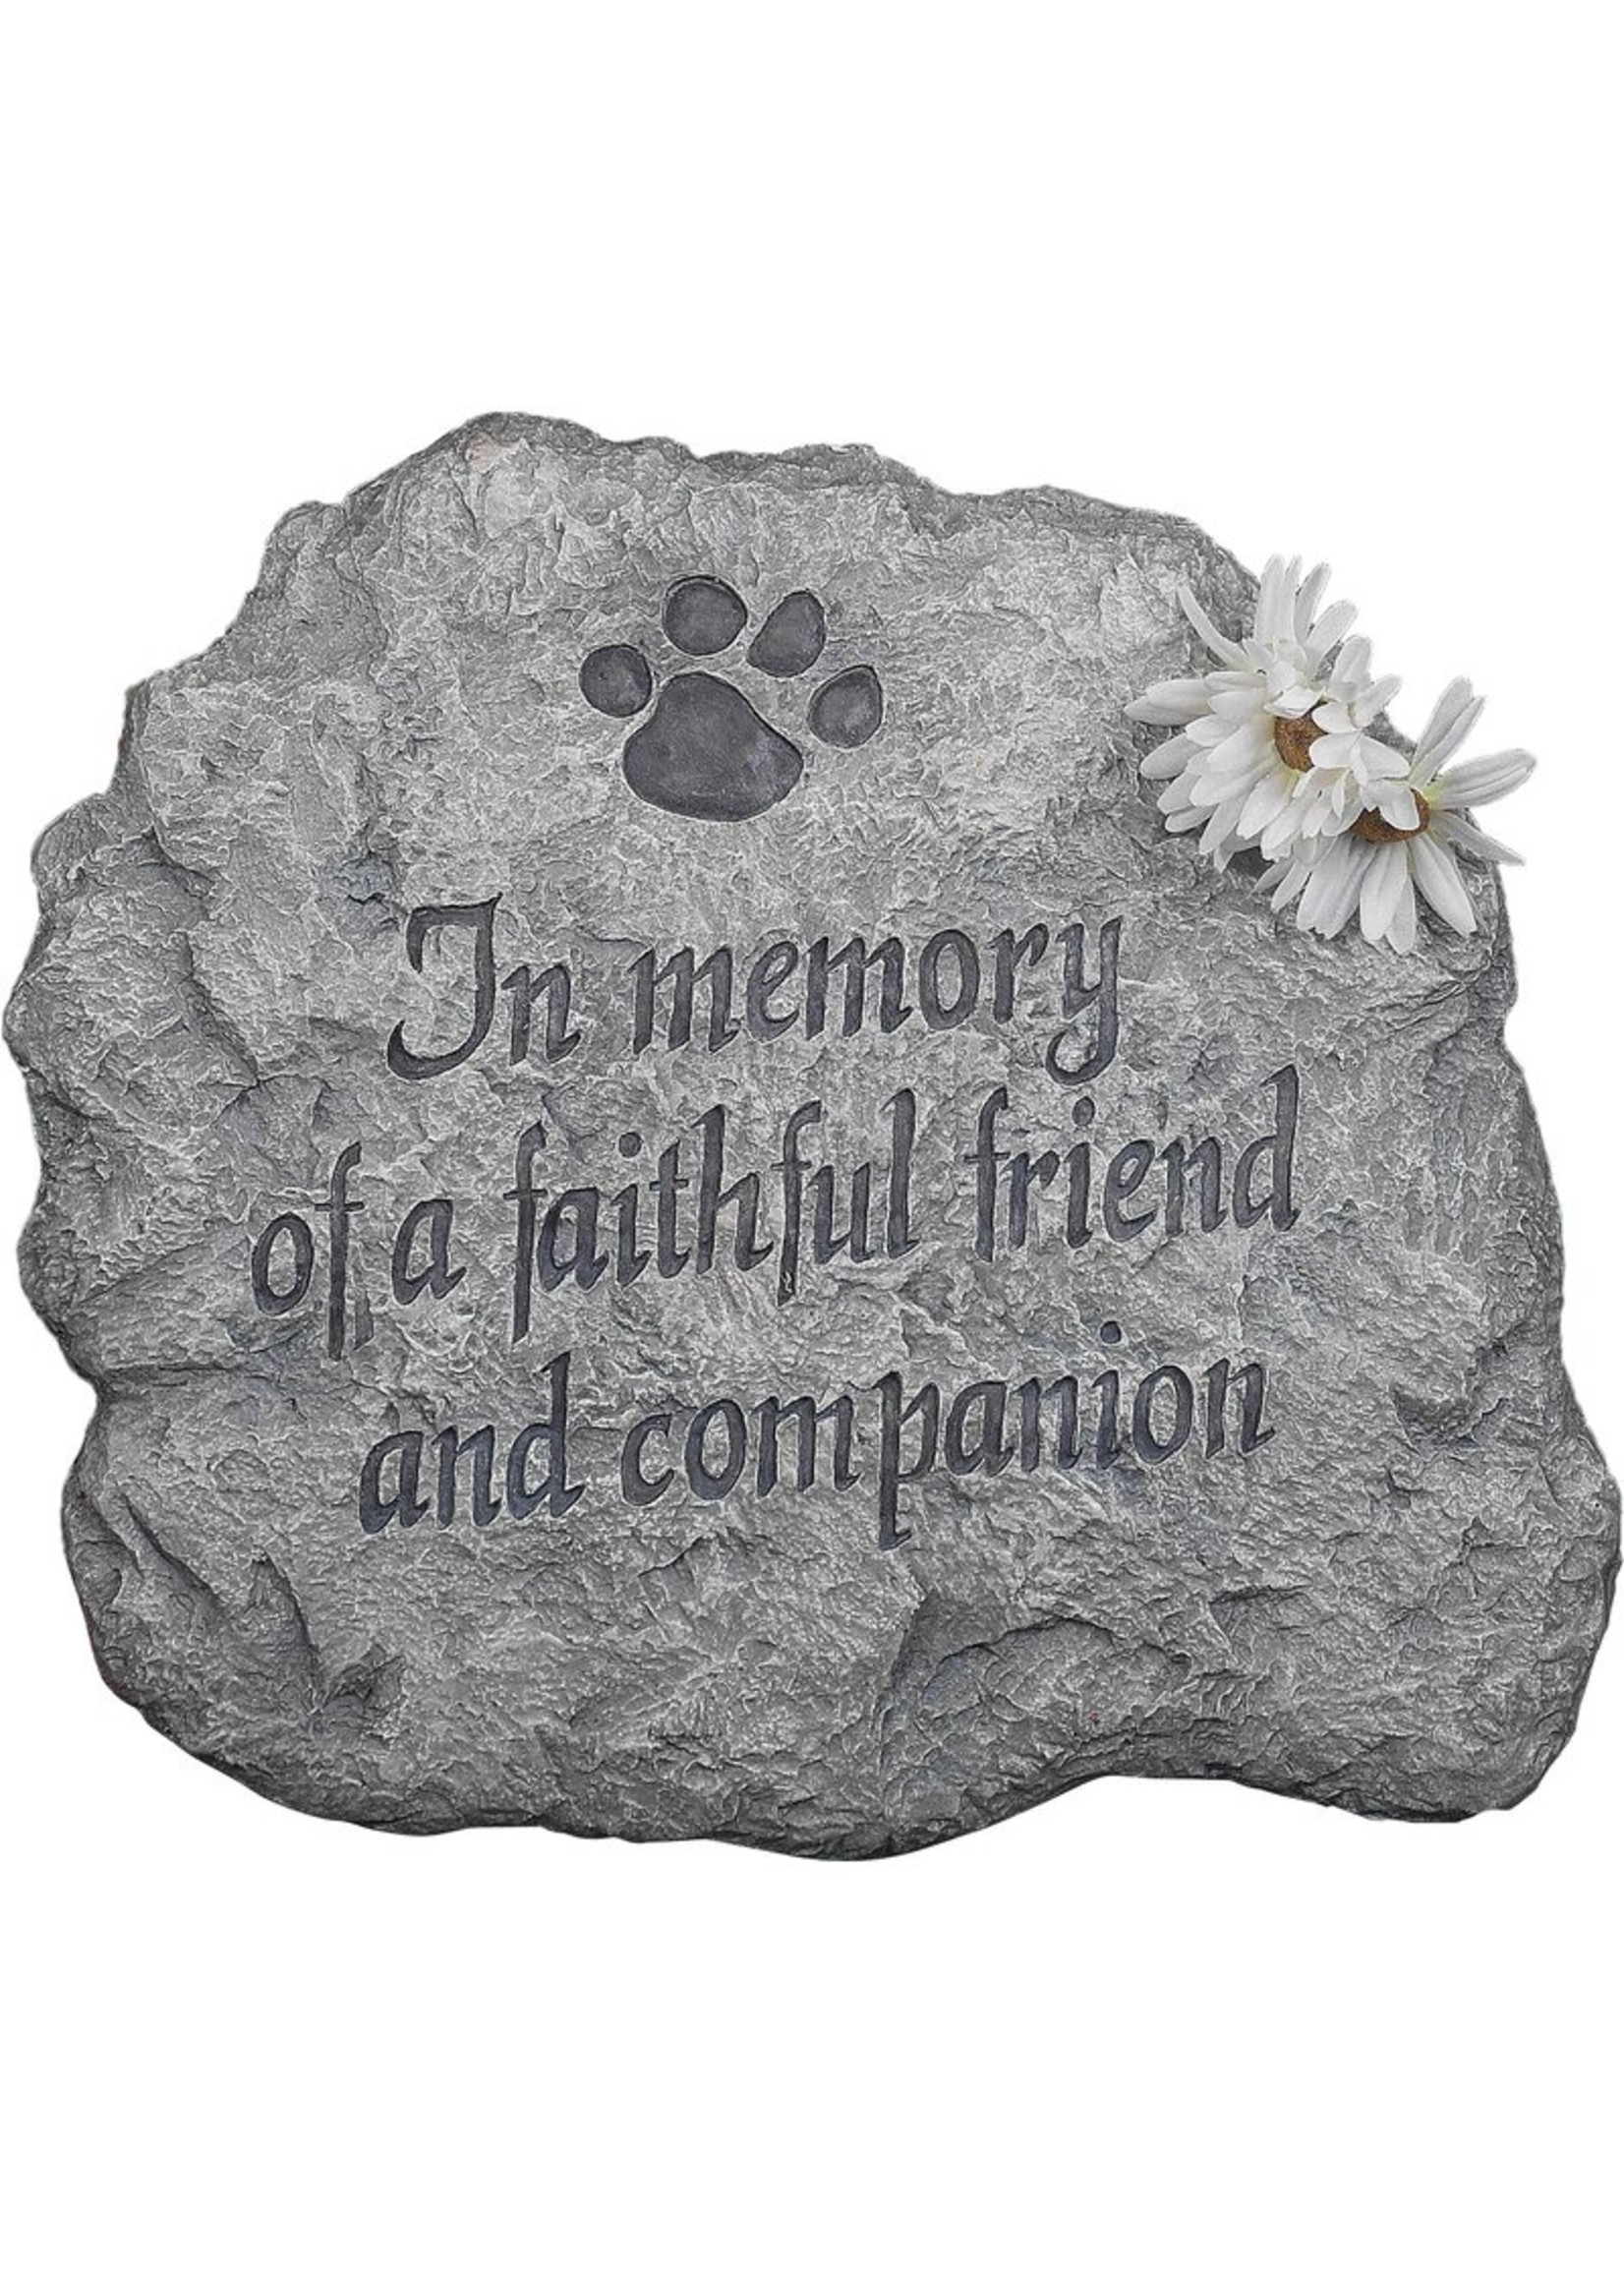 Carson Home Accents Stepping Stone, In Memory of a Faithful Friend & Companion